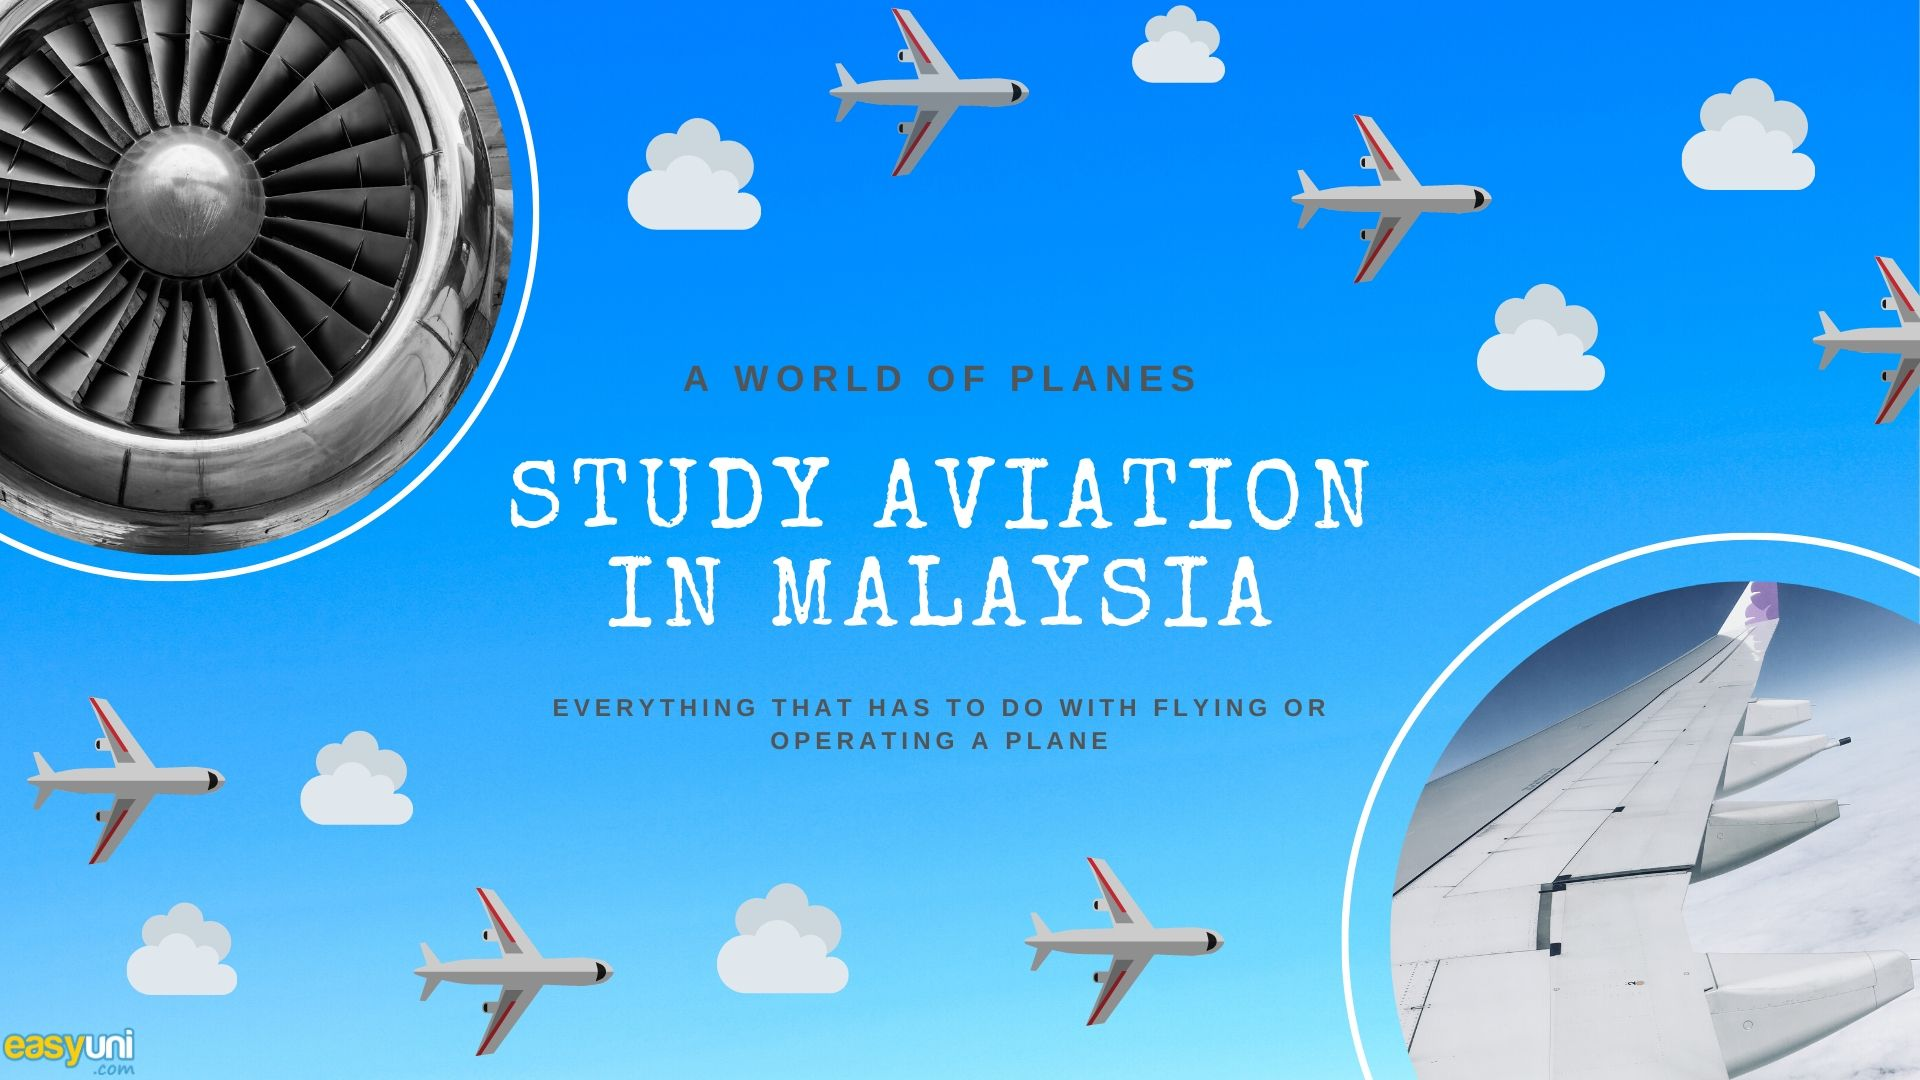 Study aviation in Malaysia - everything you need to know